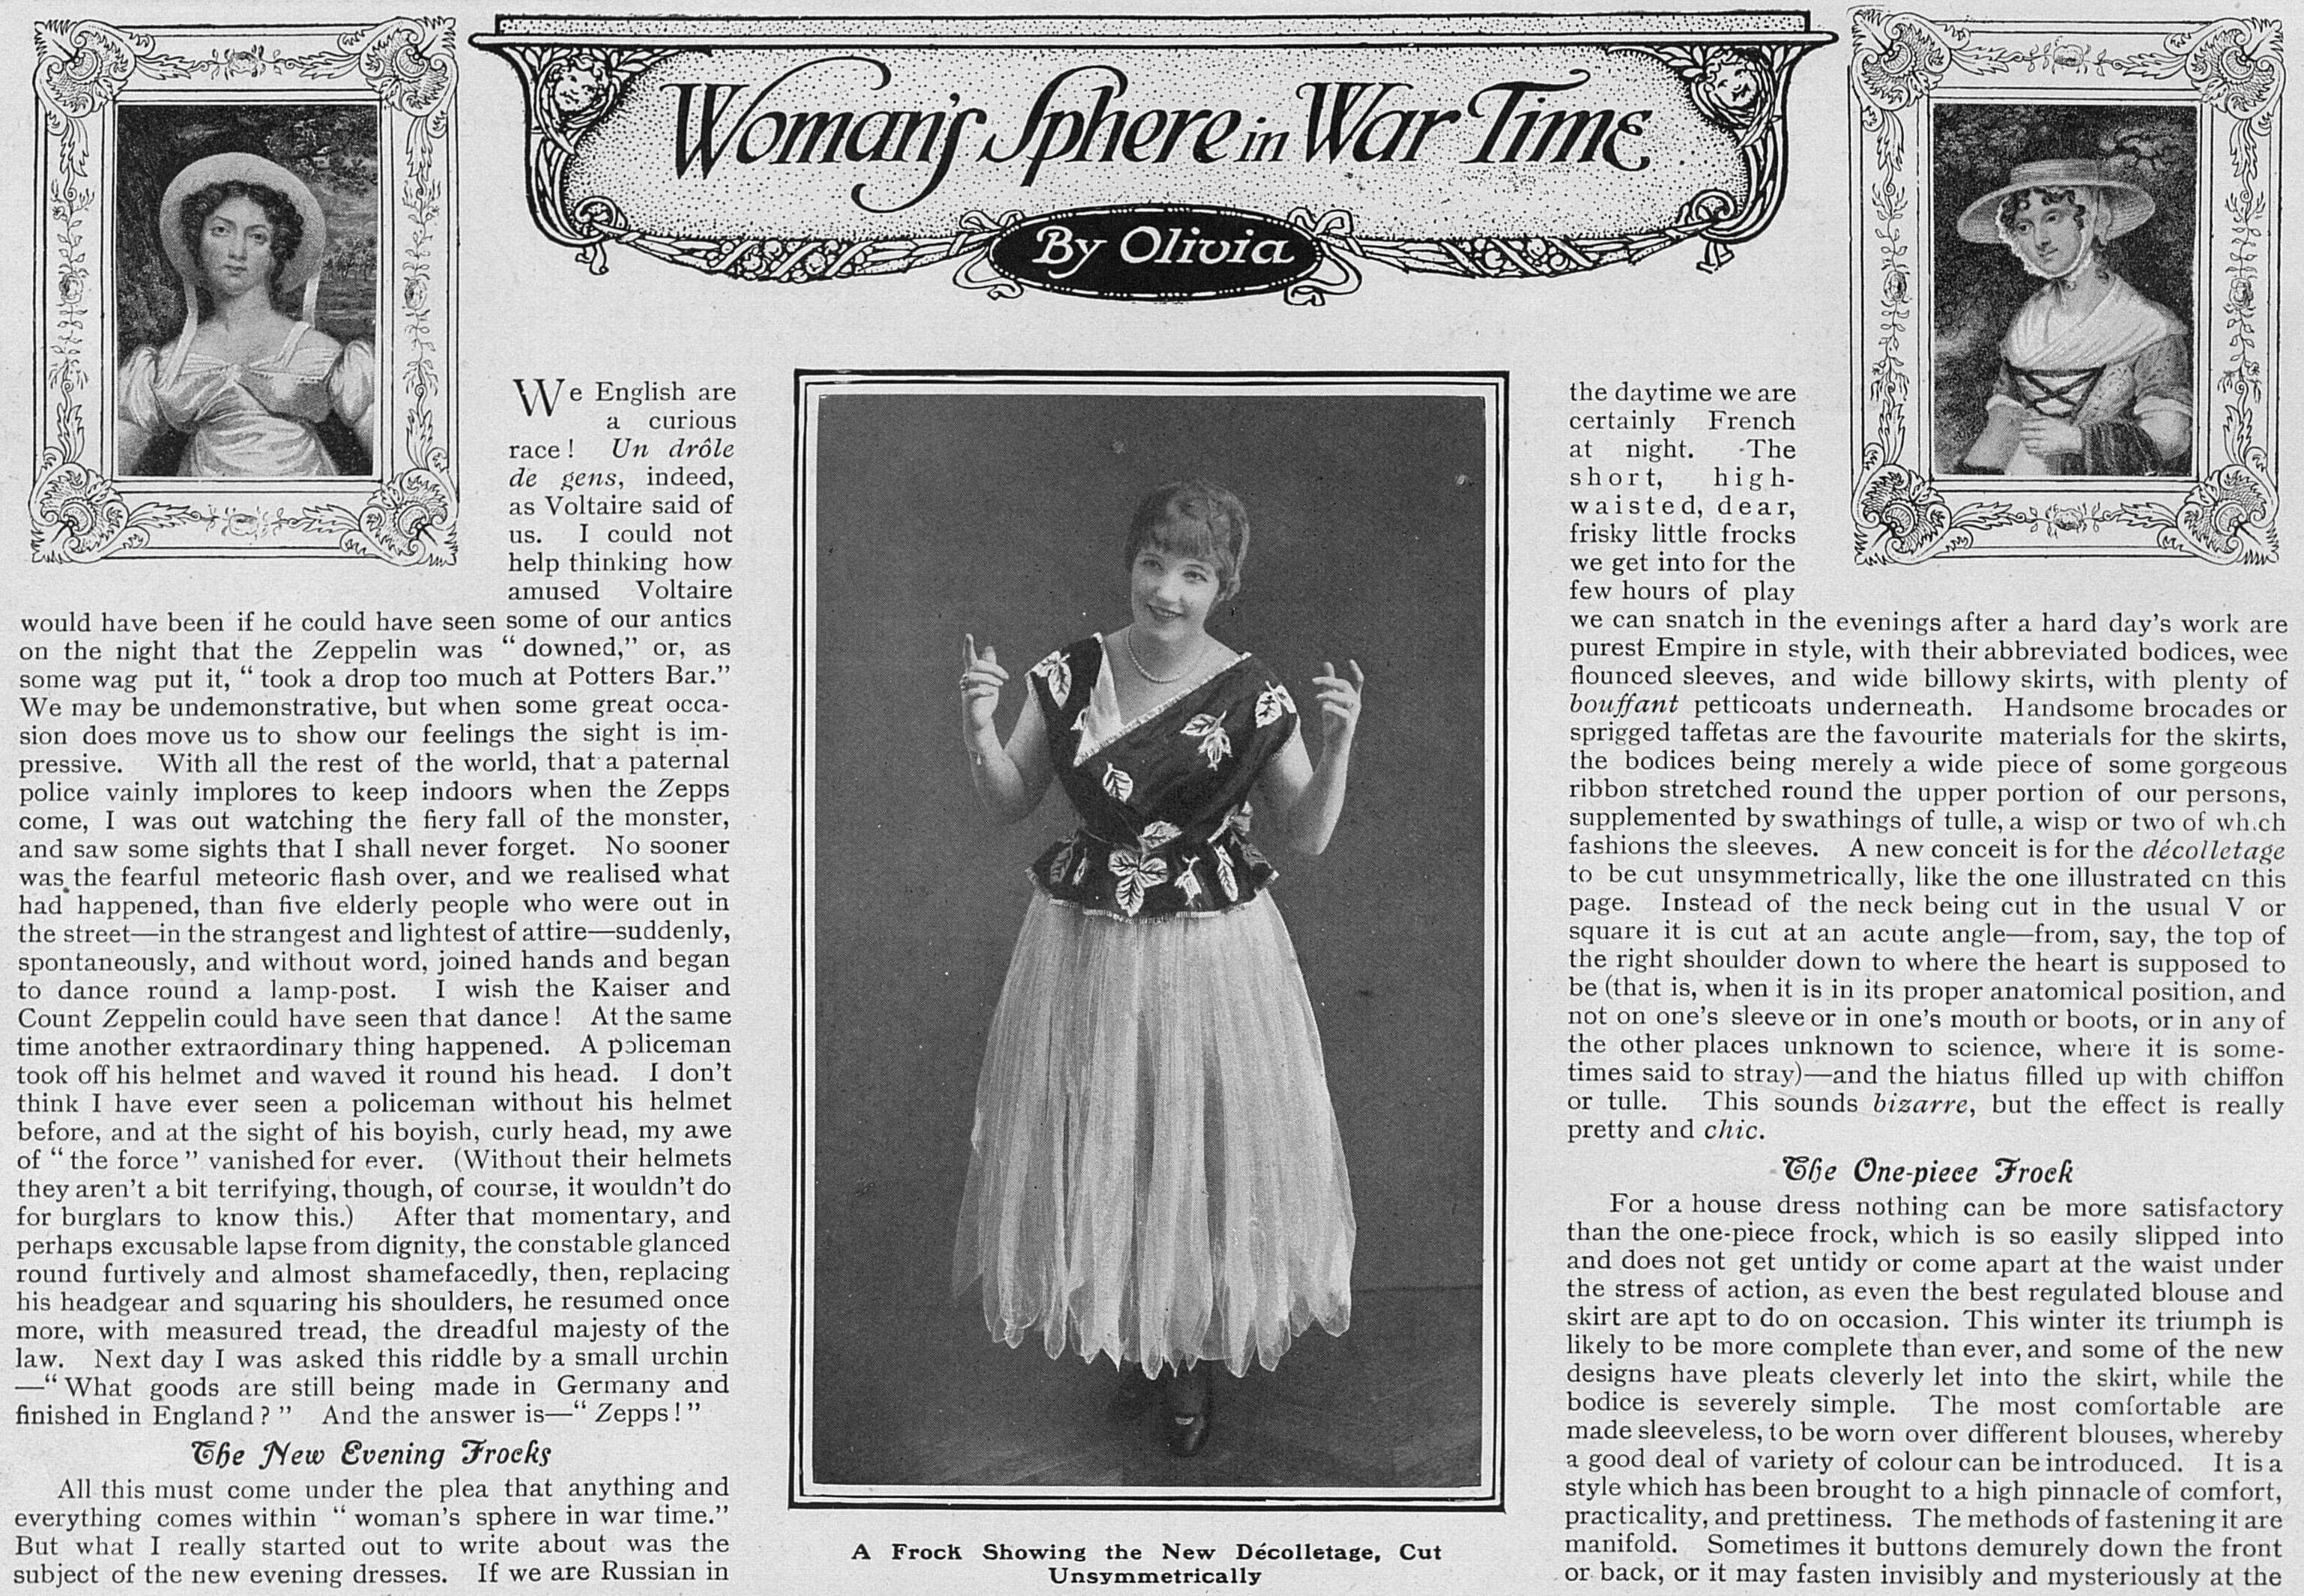 WomansSphereInWarTime_14Oct1916